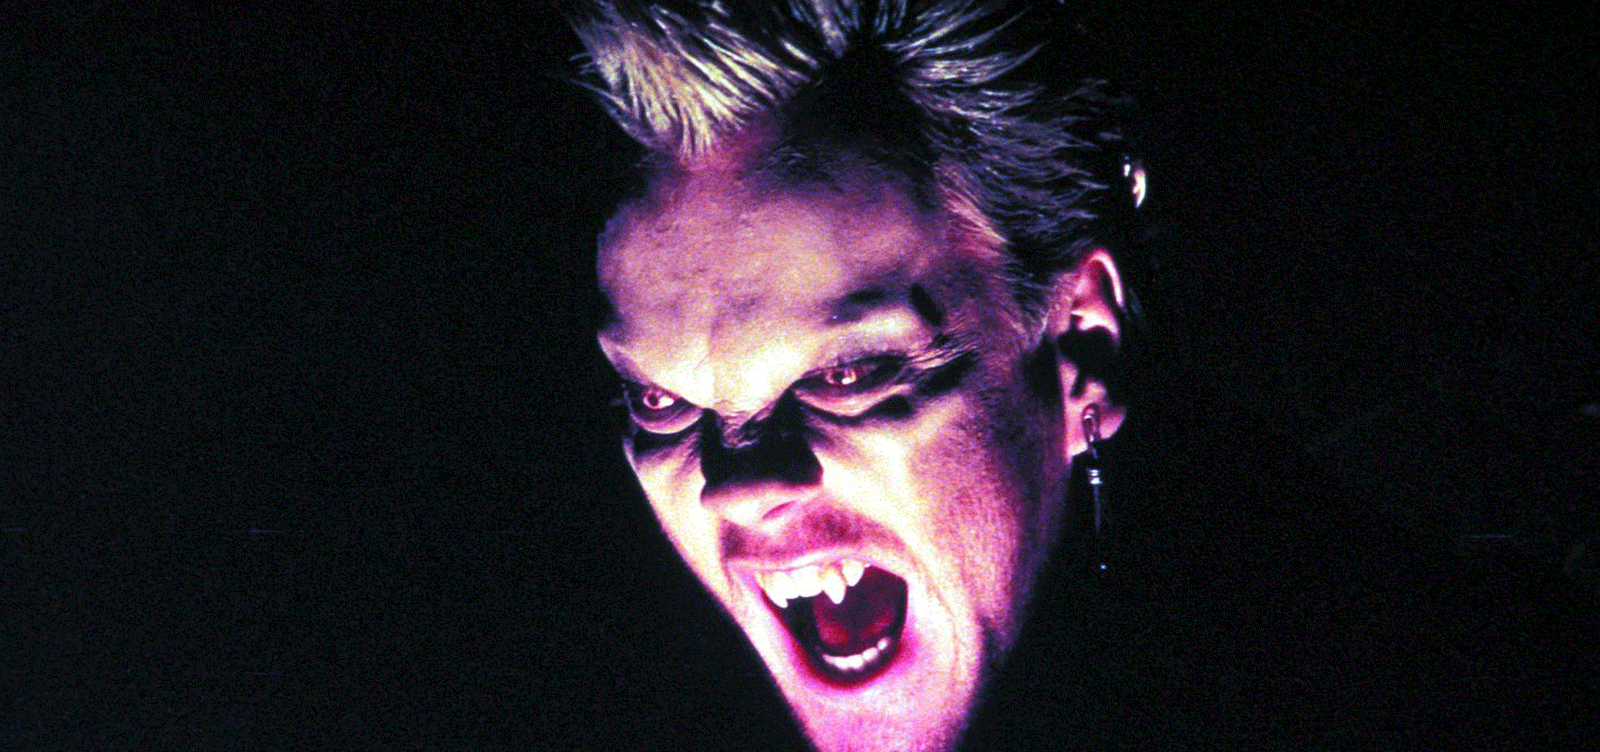 Lost_boys_david_im_01